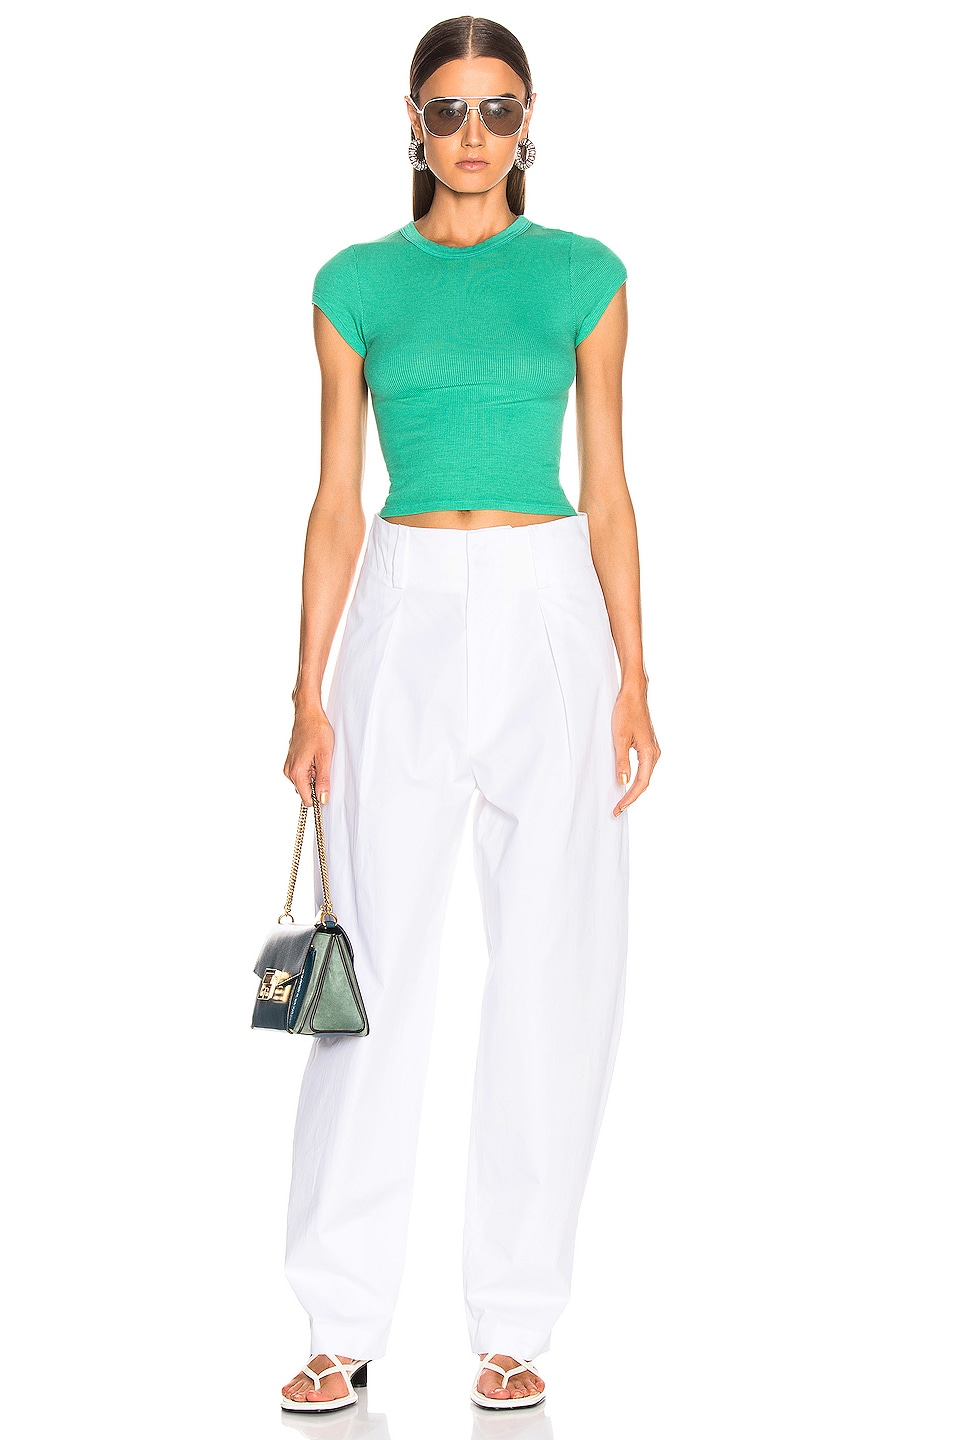 Image 4 of Enza Costa Cropped Tee in Jade Green